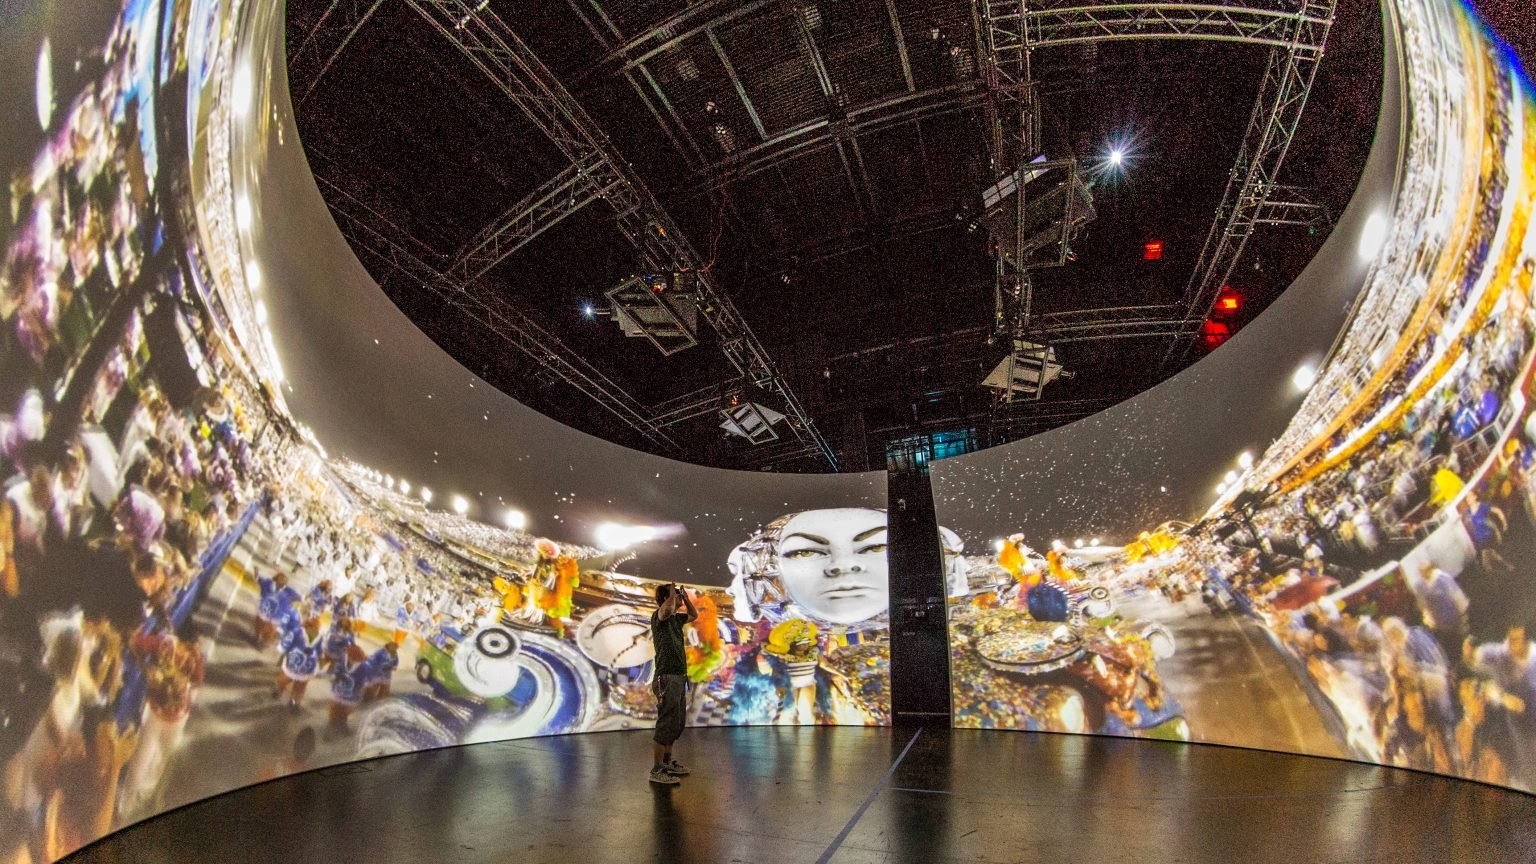 Immersive Projection Design | Projection Systems | The Elumenati